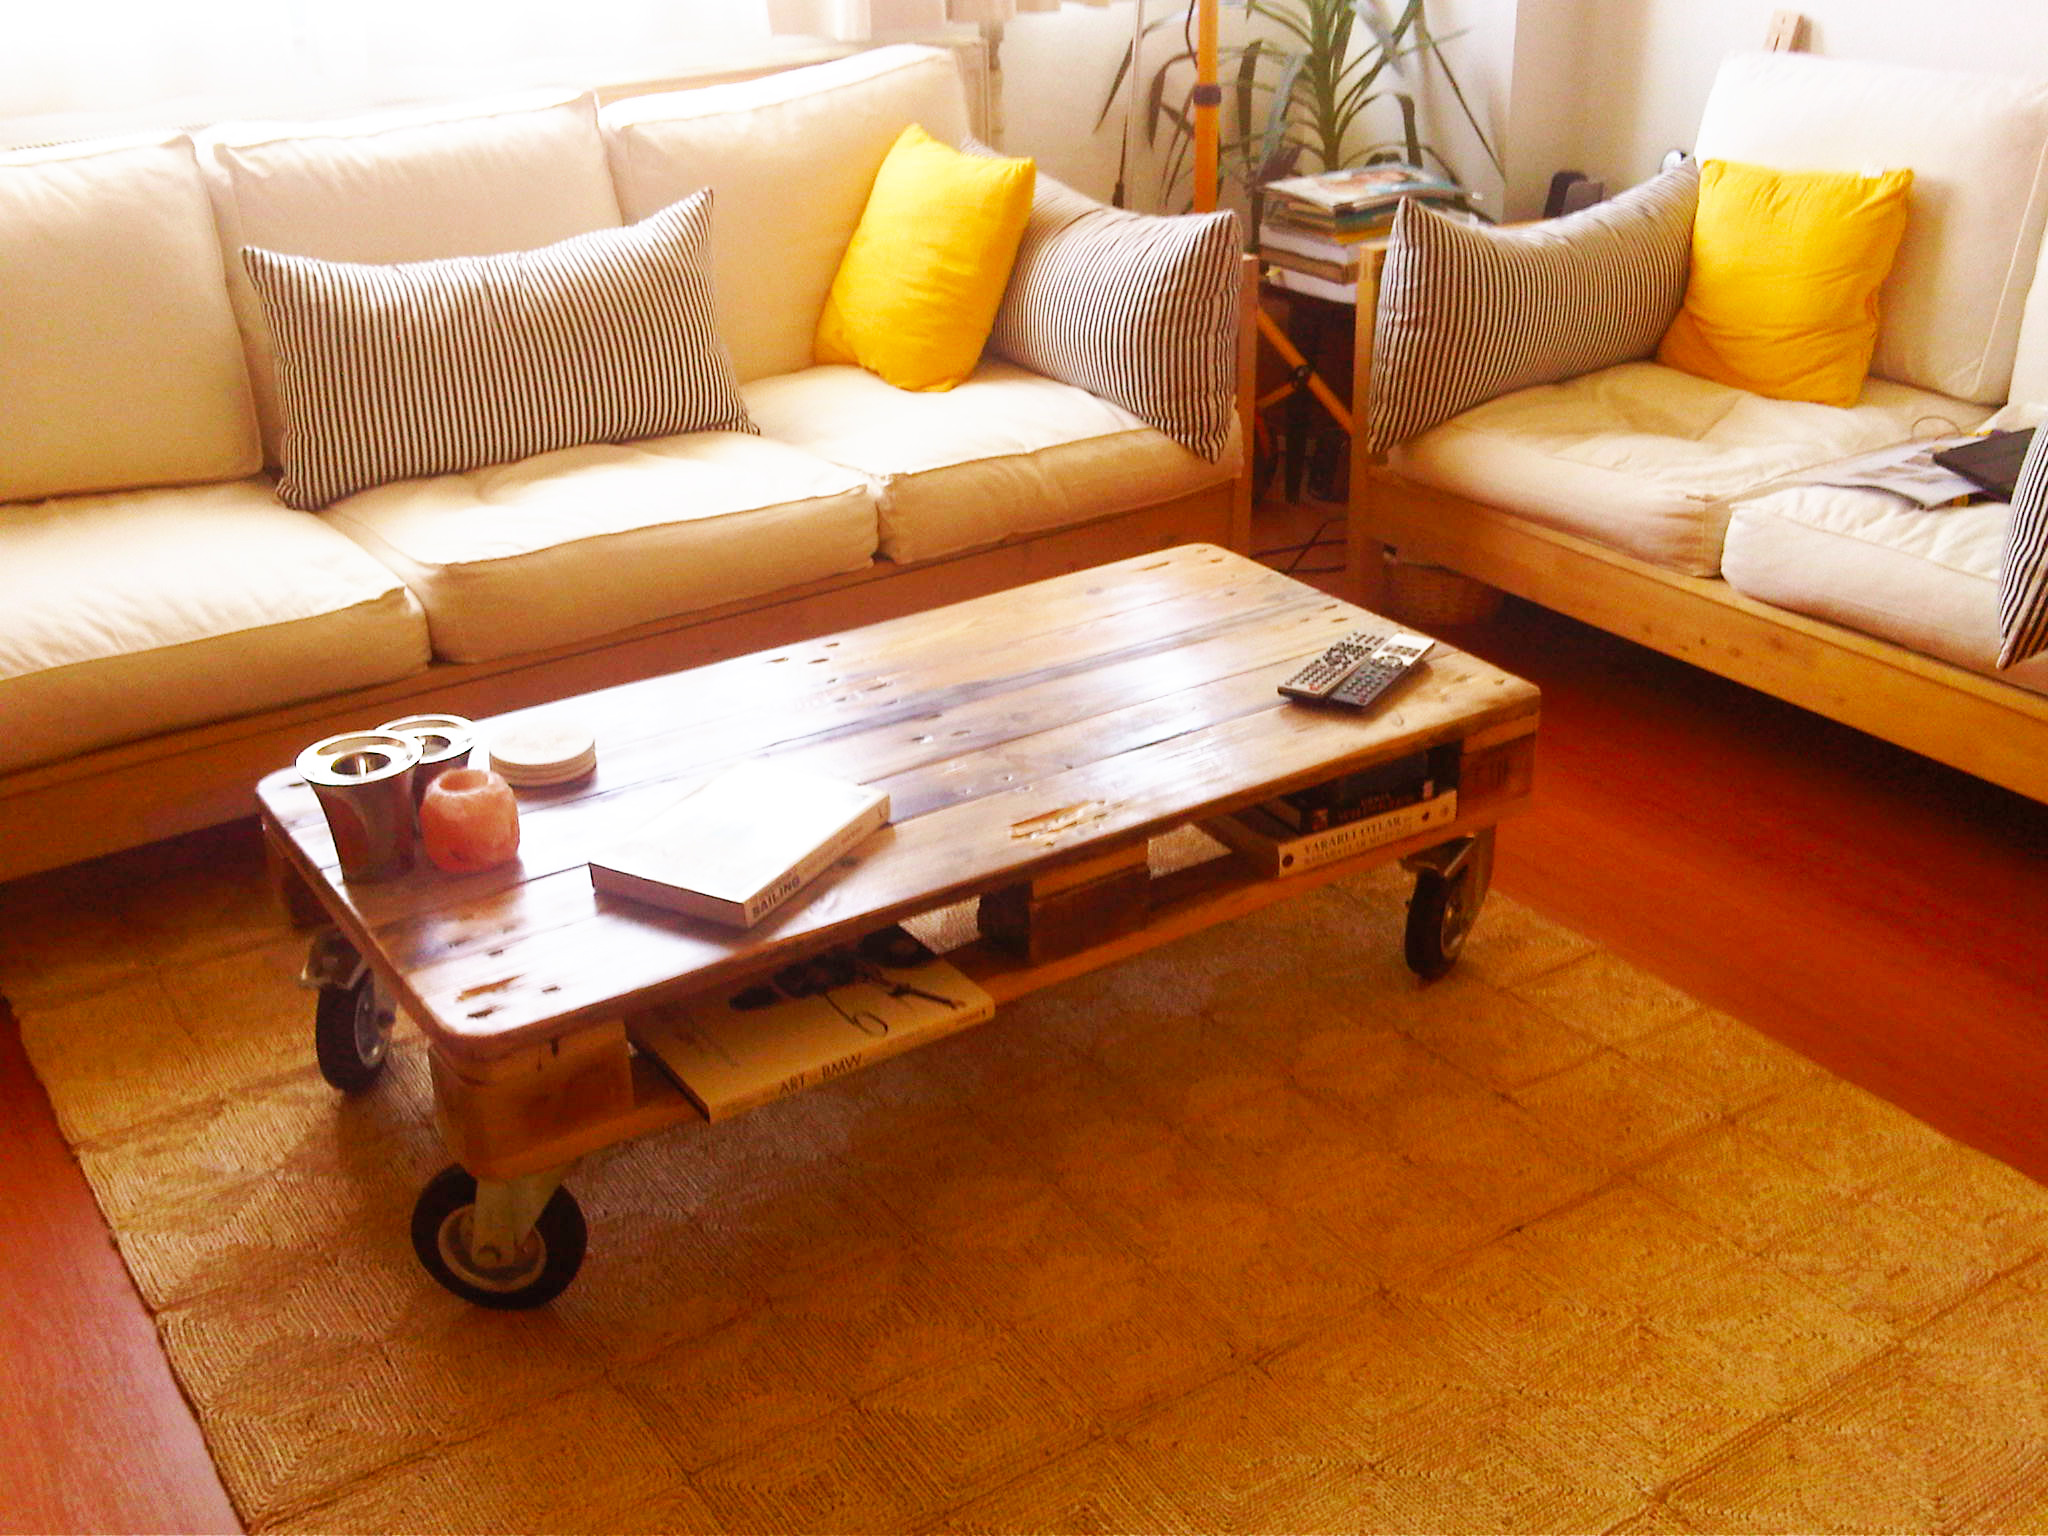 furnitures-ideas-from-wood-pallet-by-wood-pallet-project-to-make-pallet-table-design-with-wheels